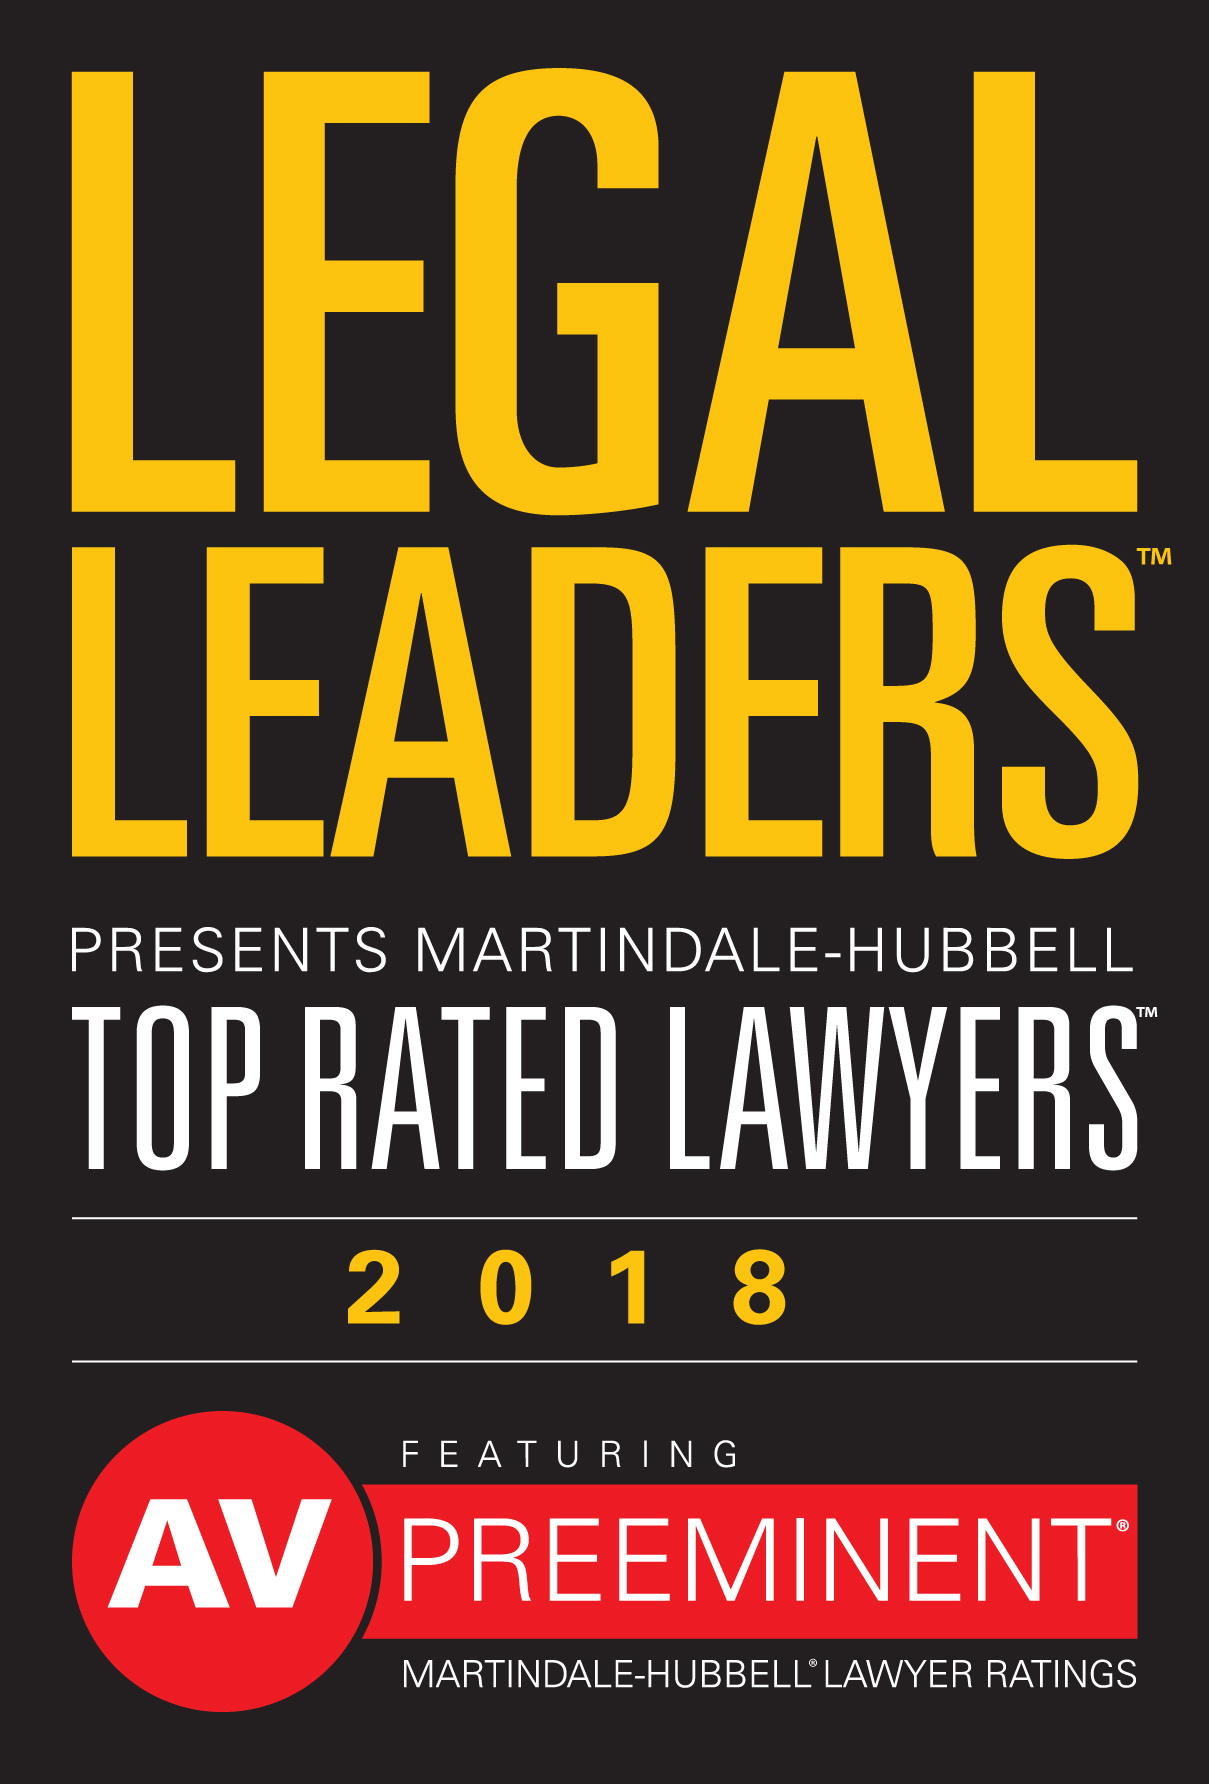 Logo: Legal Leaders Presents Martindale-Hubbell Top Rated Lawyers 2018